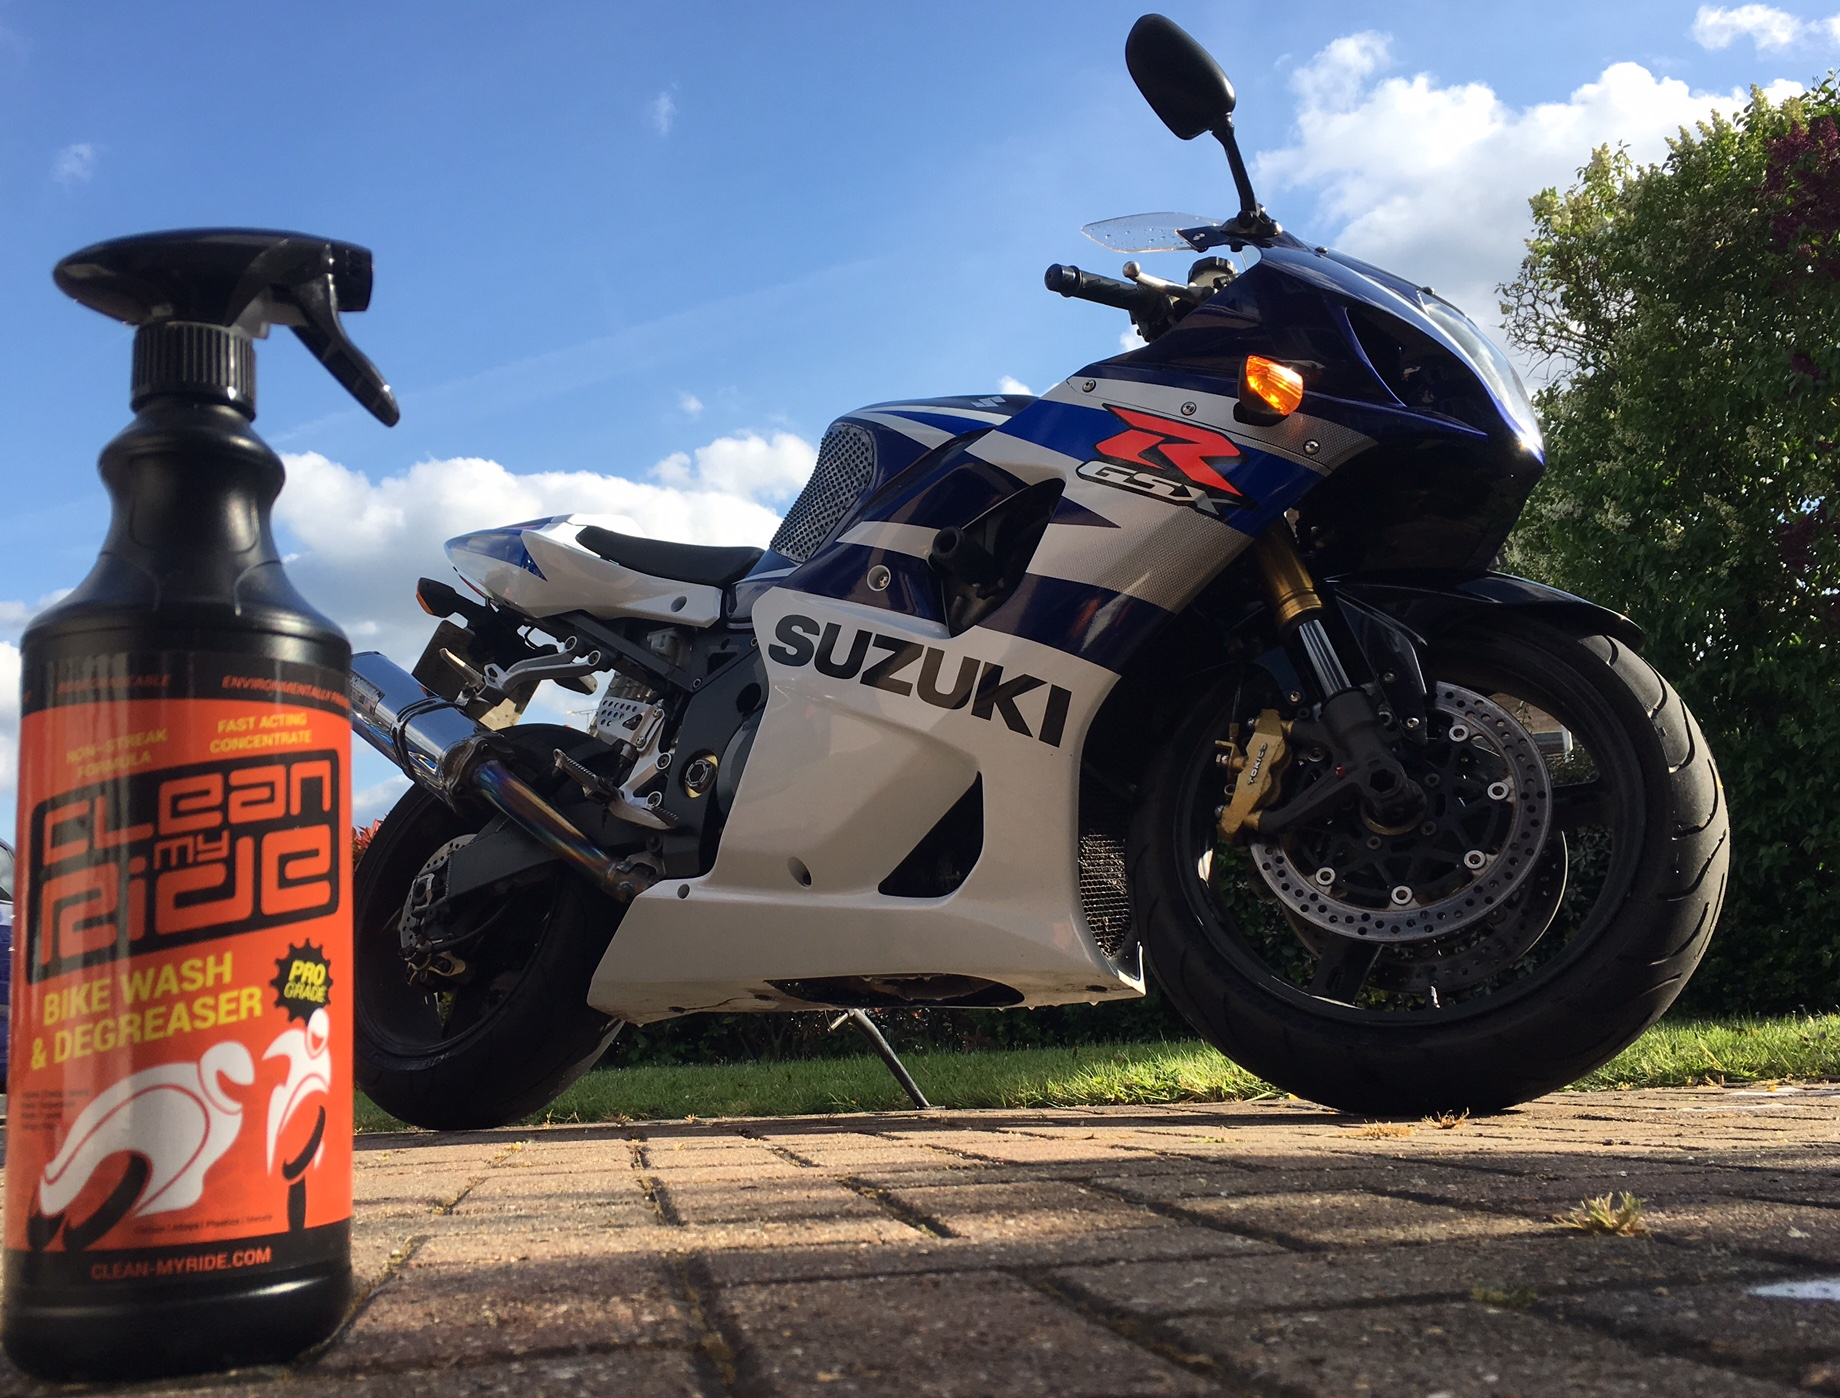 Clean MyRide Combined Wash & Degreaser